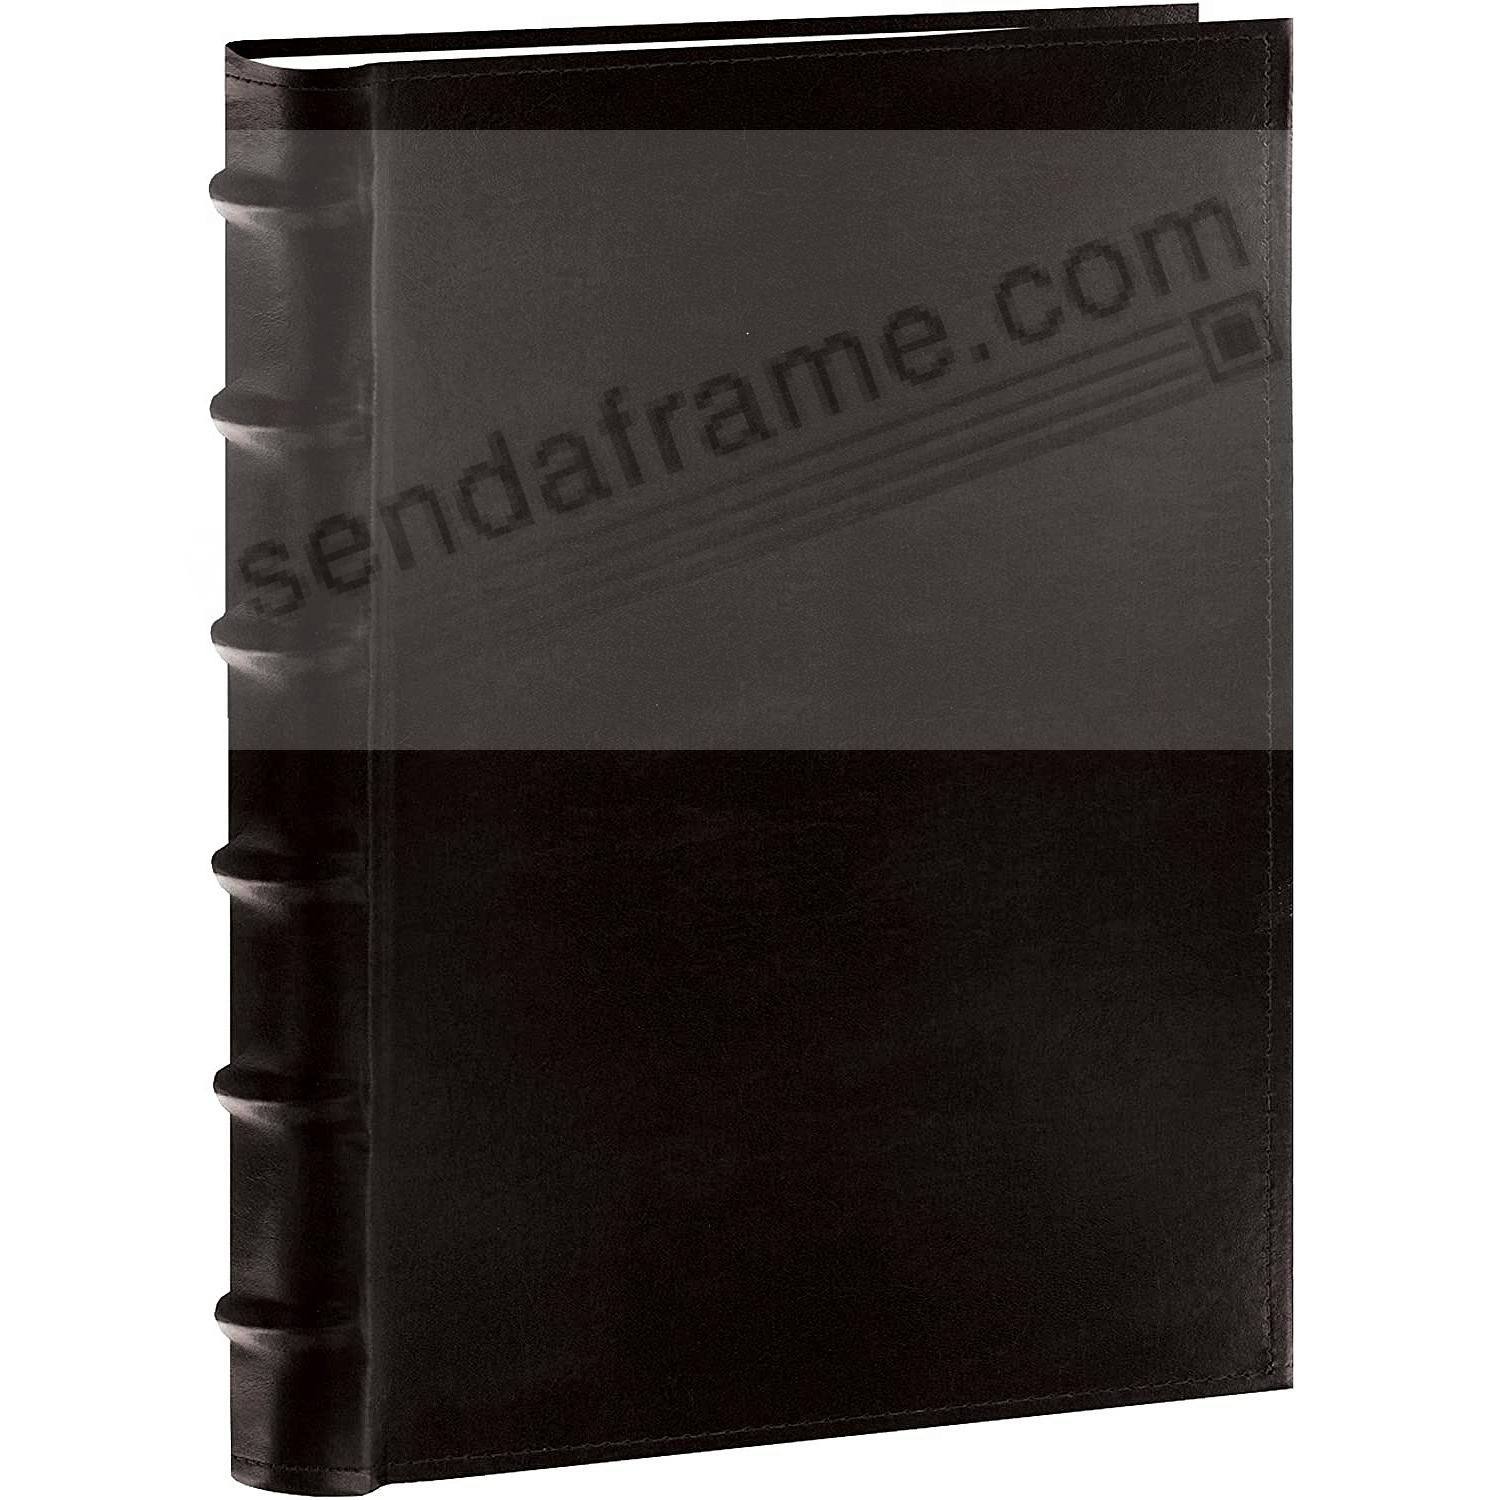 Black Leather BI-DIRECTIONAL 300 capacity slide-in pocket albums with Memo for 4x6 and panoramic prints